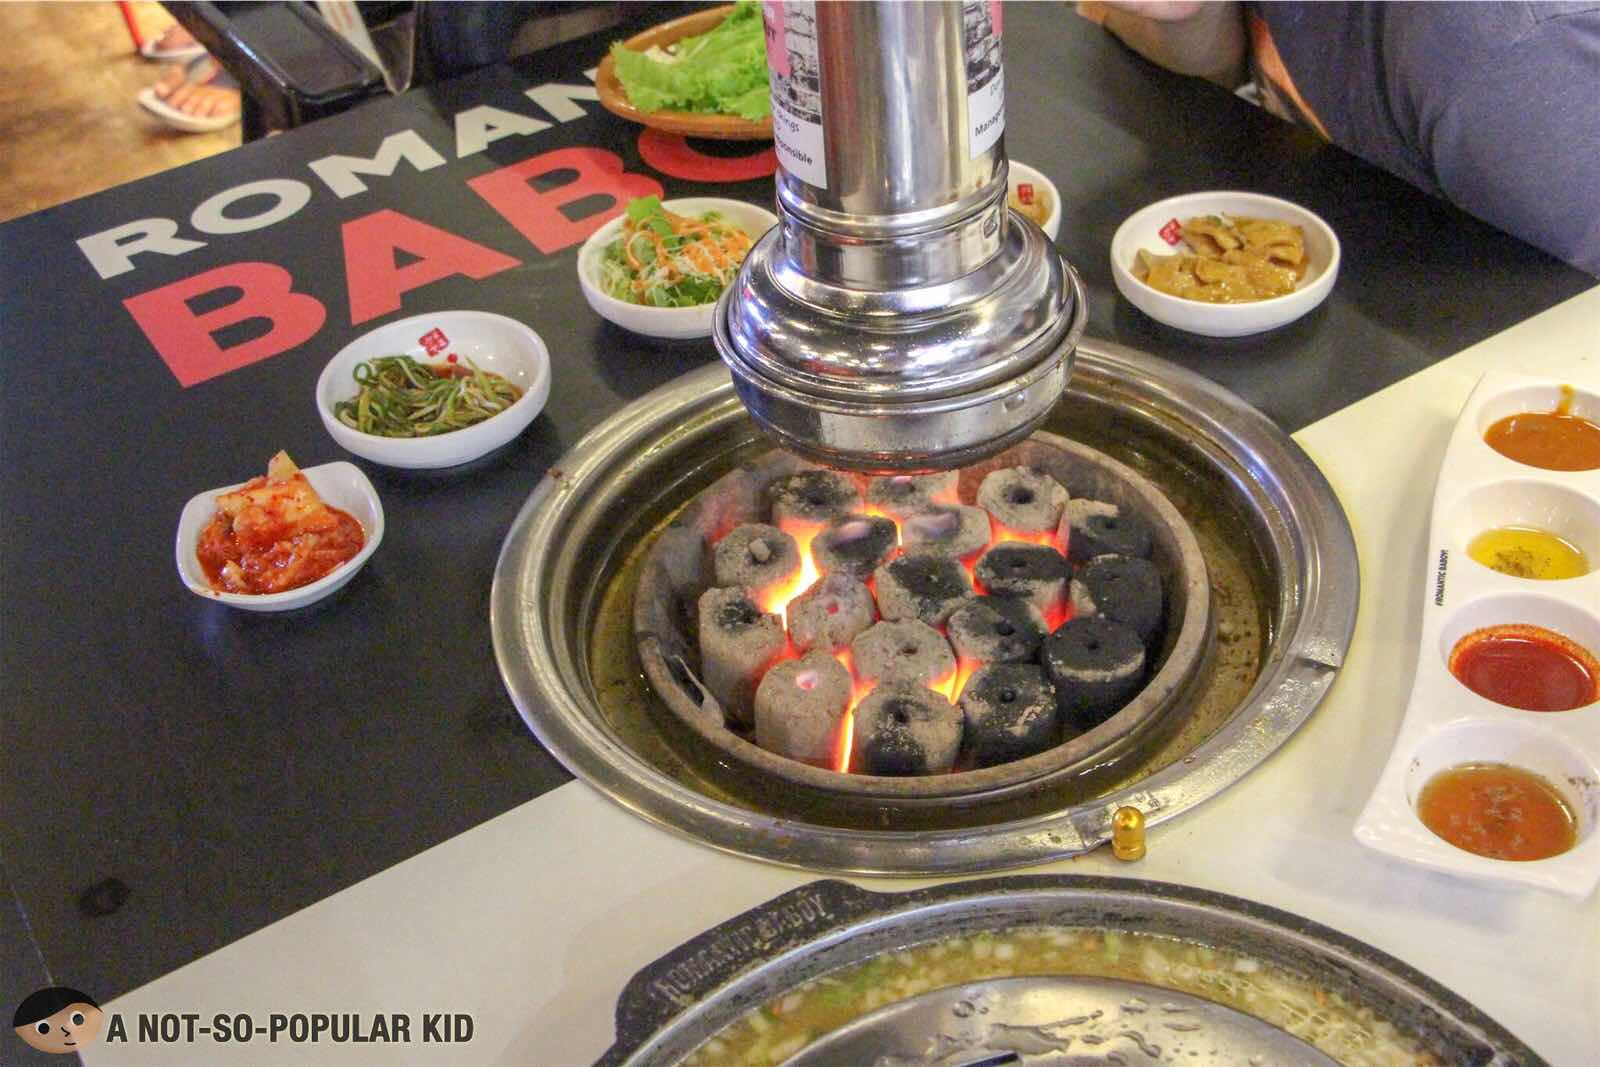 Charcoal grill of Romantic Baboy - Unlimited Samgyupsal